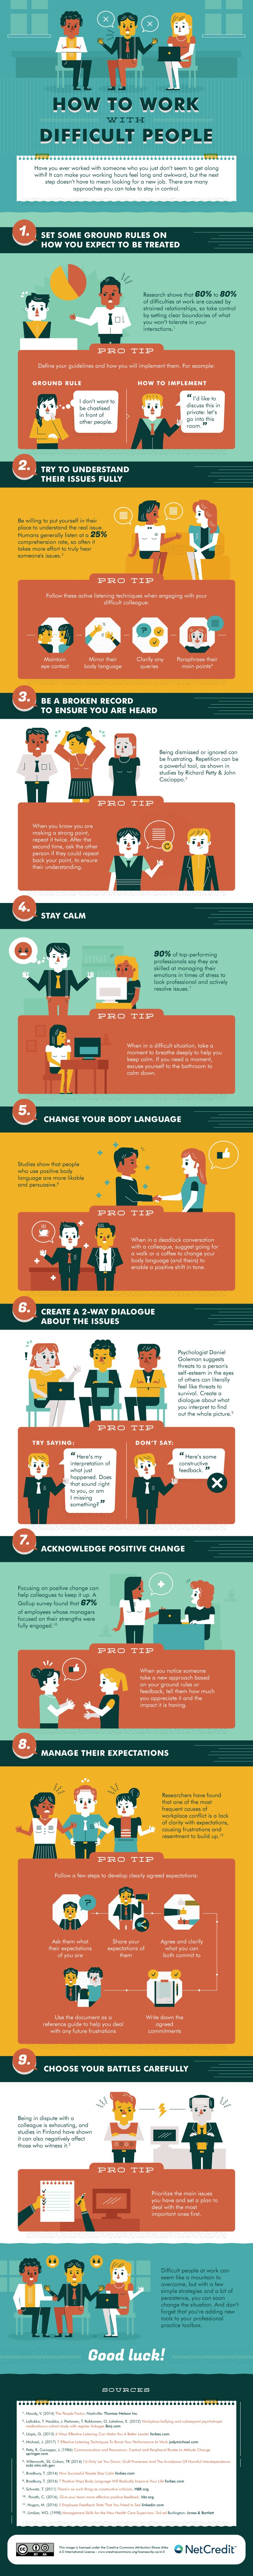 How To Talk To A Difficult Work Colleague [Infographic]